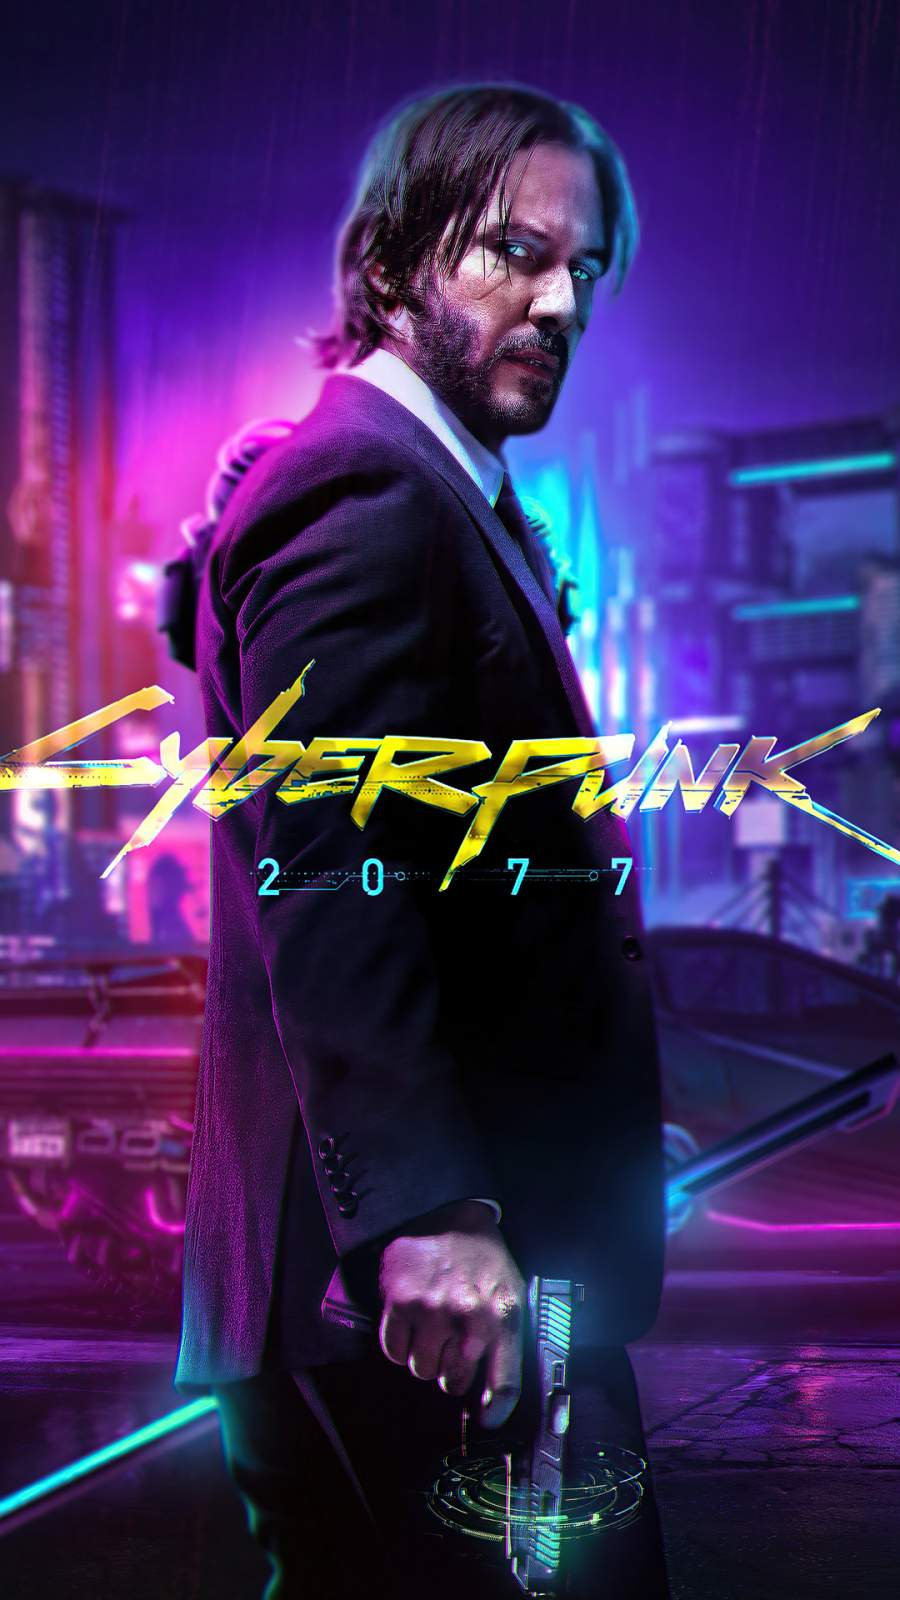 John Wick 2077 iPhone Wallpaper